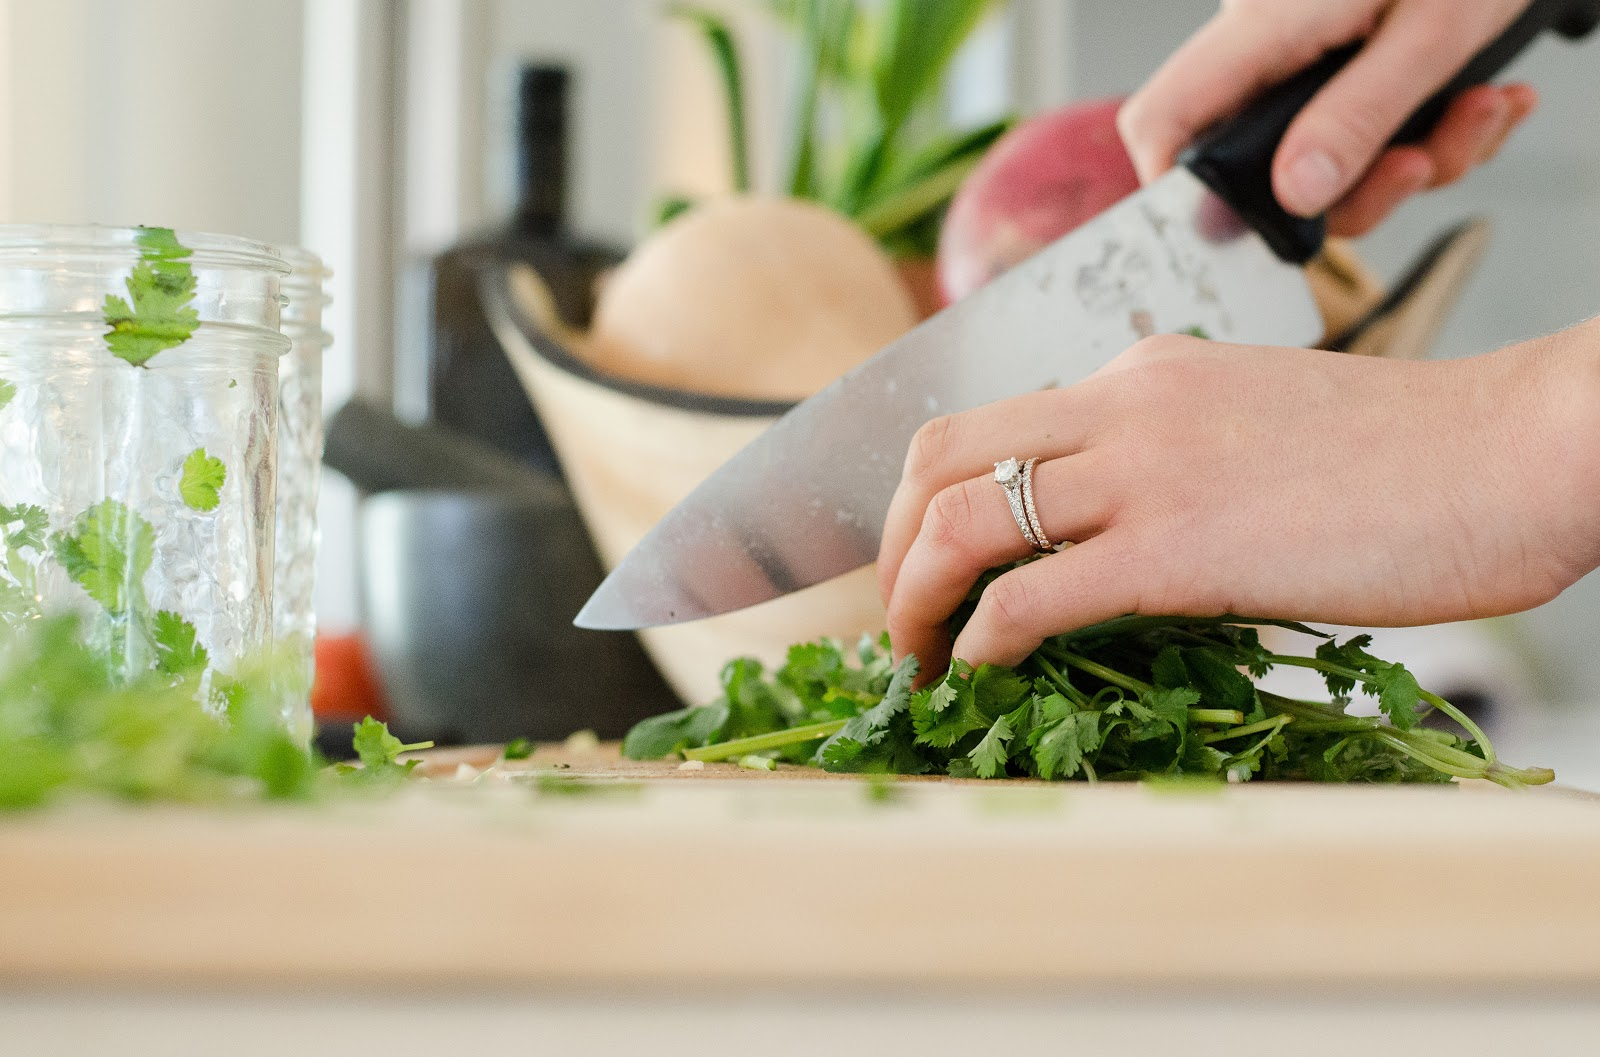 What to make for dinner: A woman chopping cilantro